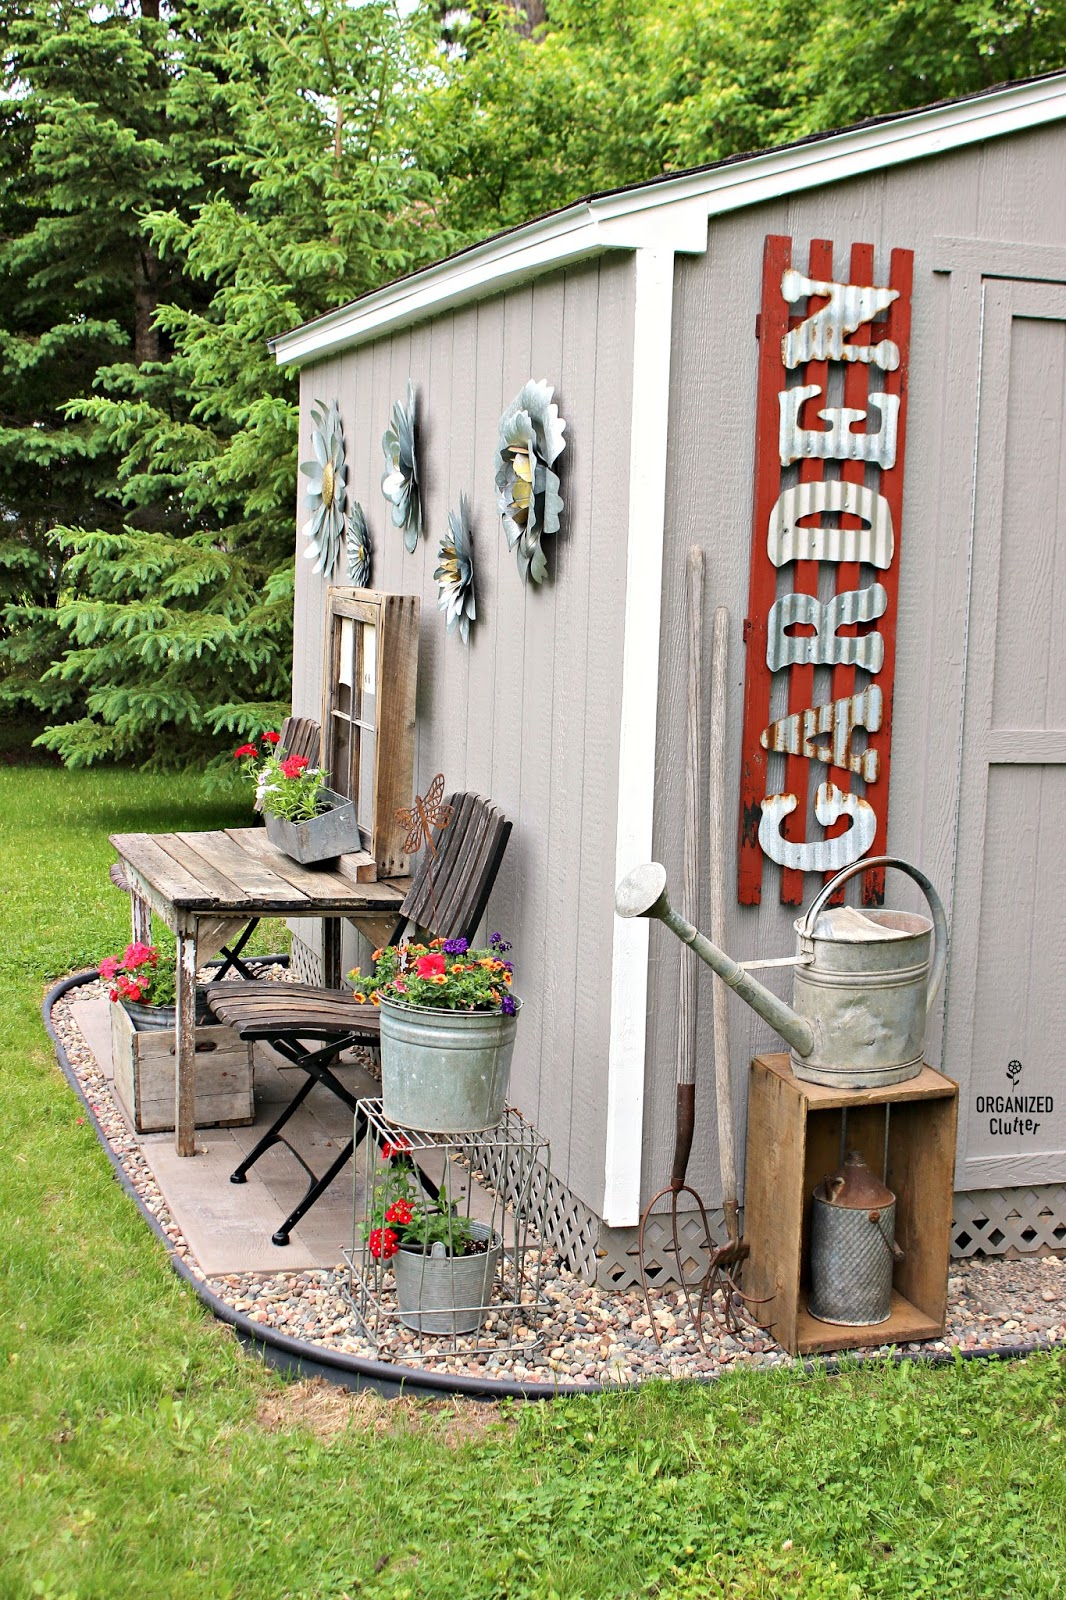 My New Junk Garden Shed Organized Clutter